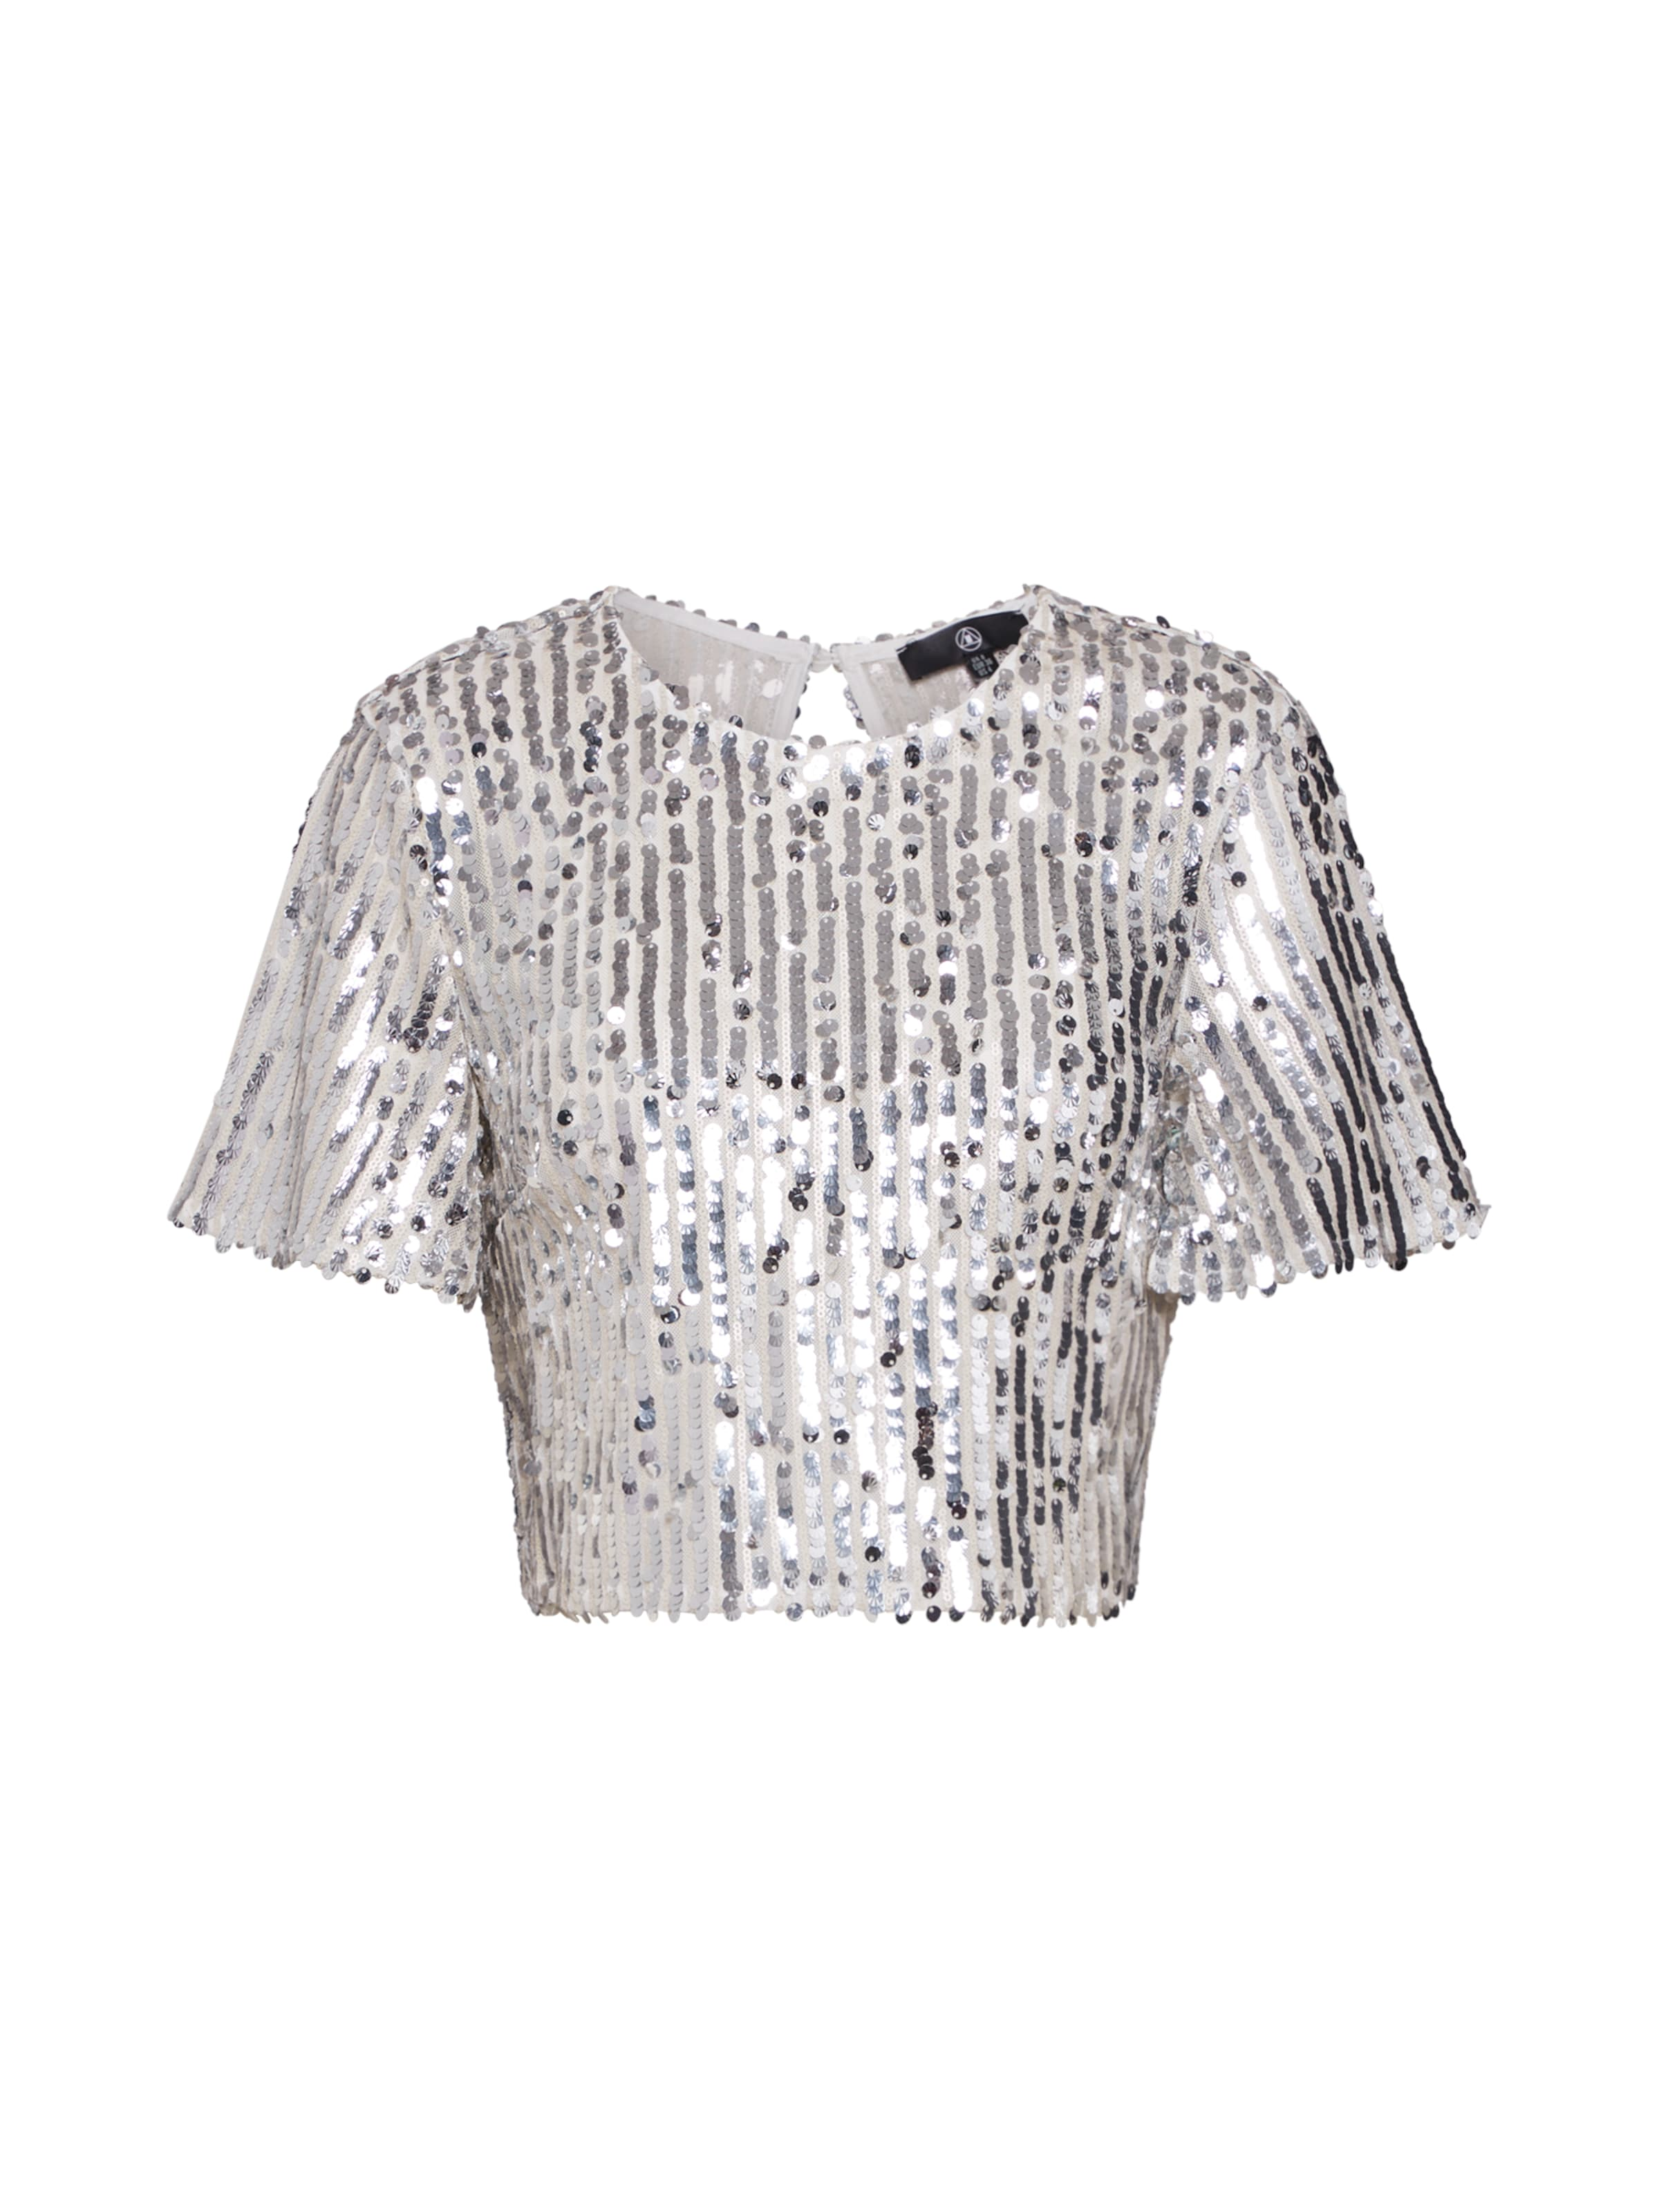 Ord' Missguided Shirt In Co Silber Crop 'sequin Top XkiuOZTP